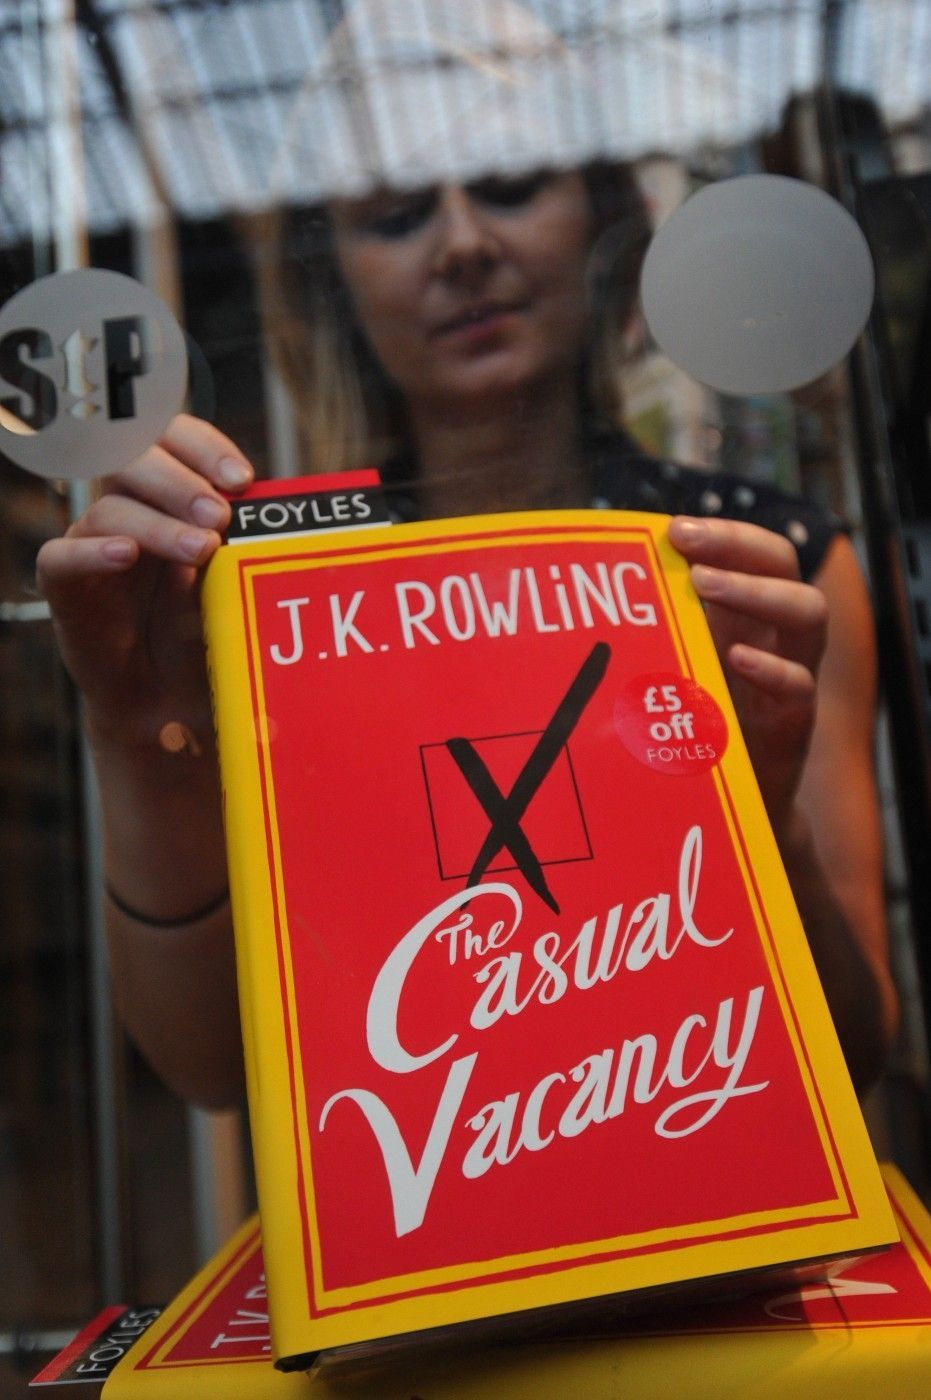 Casual Vacancy - rowlingová